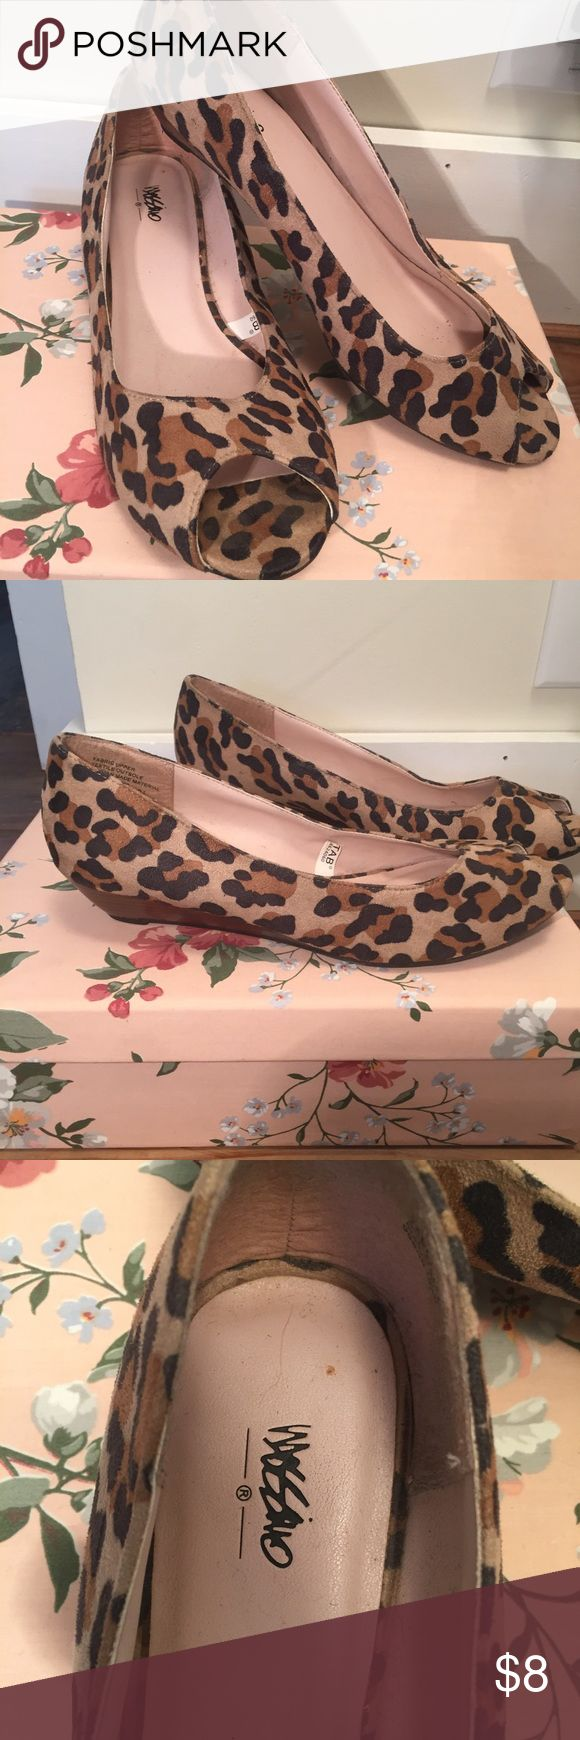 Leopard Print Wedges In great condition Mossimo Supply Co. Shoes Wedges